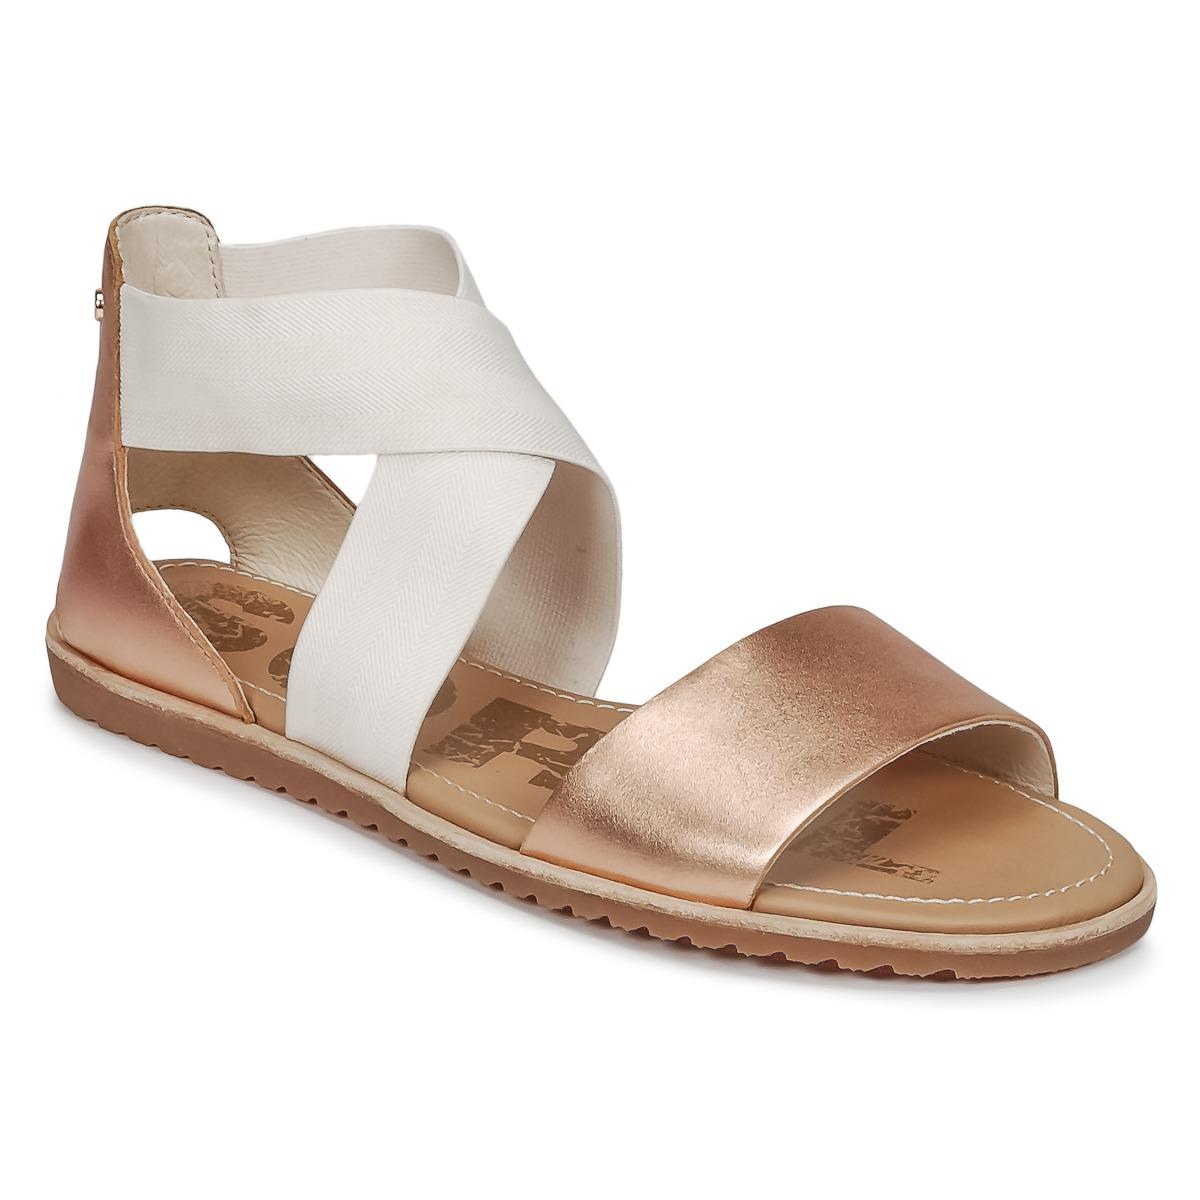 0d80696cbc3 Sorel Ellatm Sandal Women s Sandals In Beige in Natural - Save 51 ...